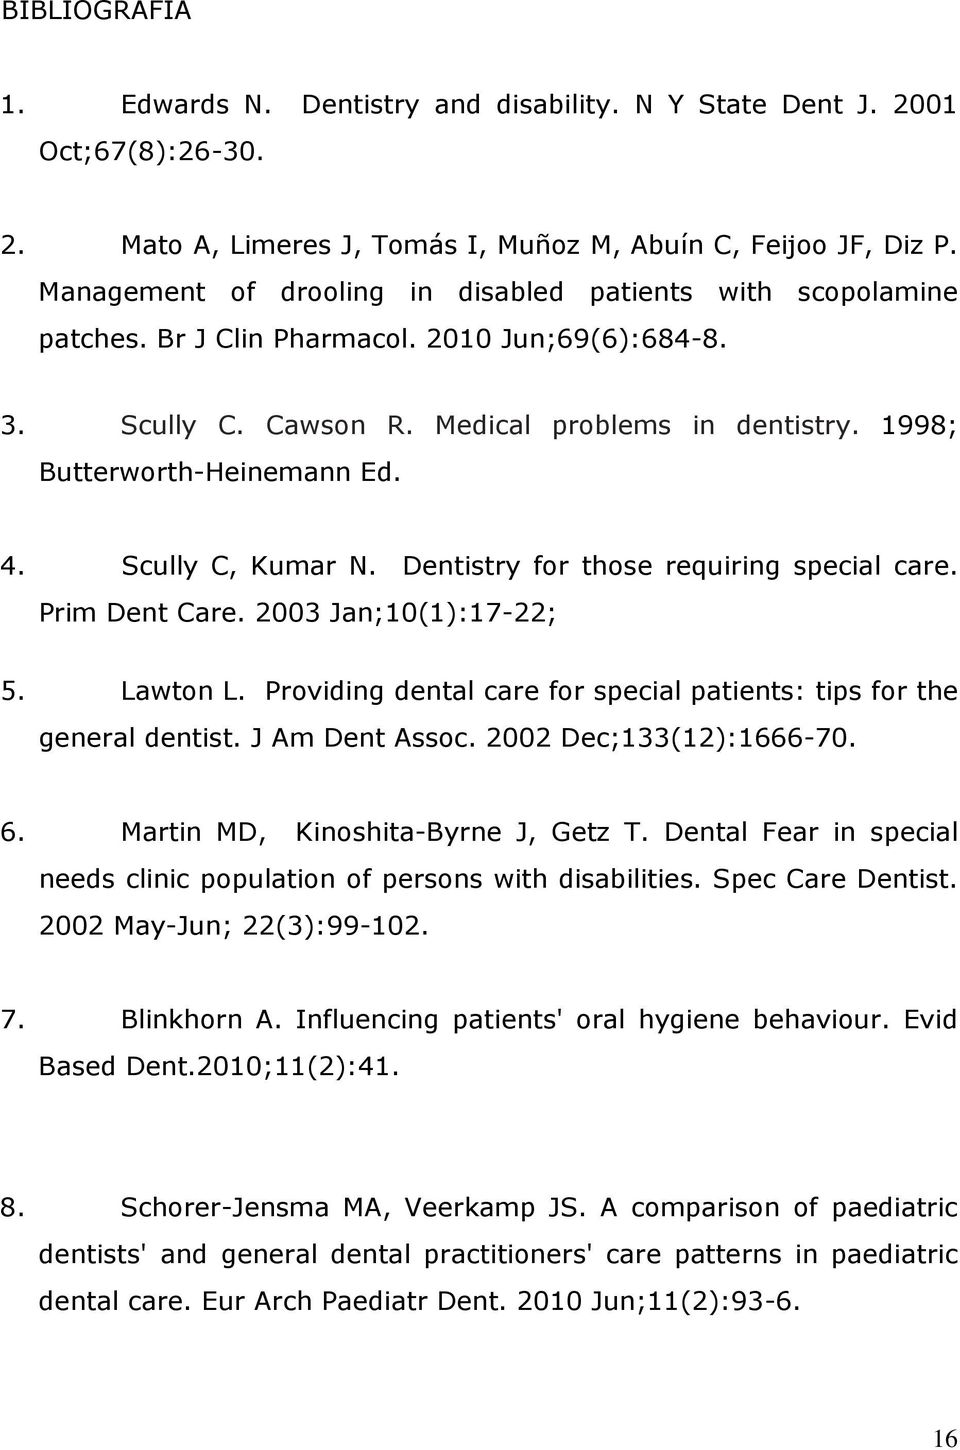 4. Scully C, Kumar N. Dentistry for those requiring special care. Prim Dent Care. 2003 Jan;10(1):17-22; 5. Lawton L. Providing dental care for special patients: tips for the general dentist.